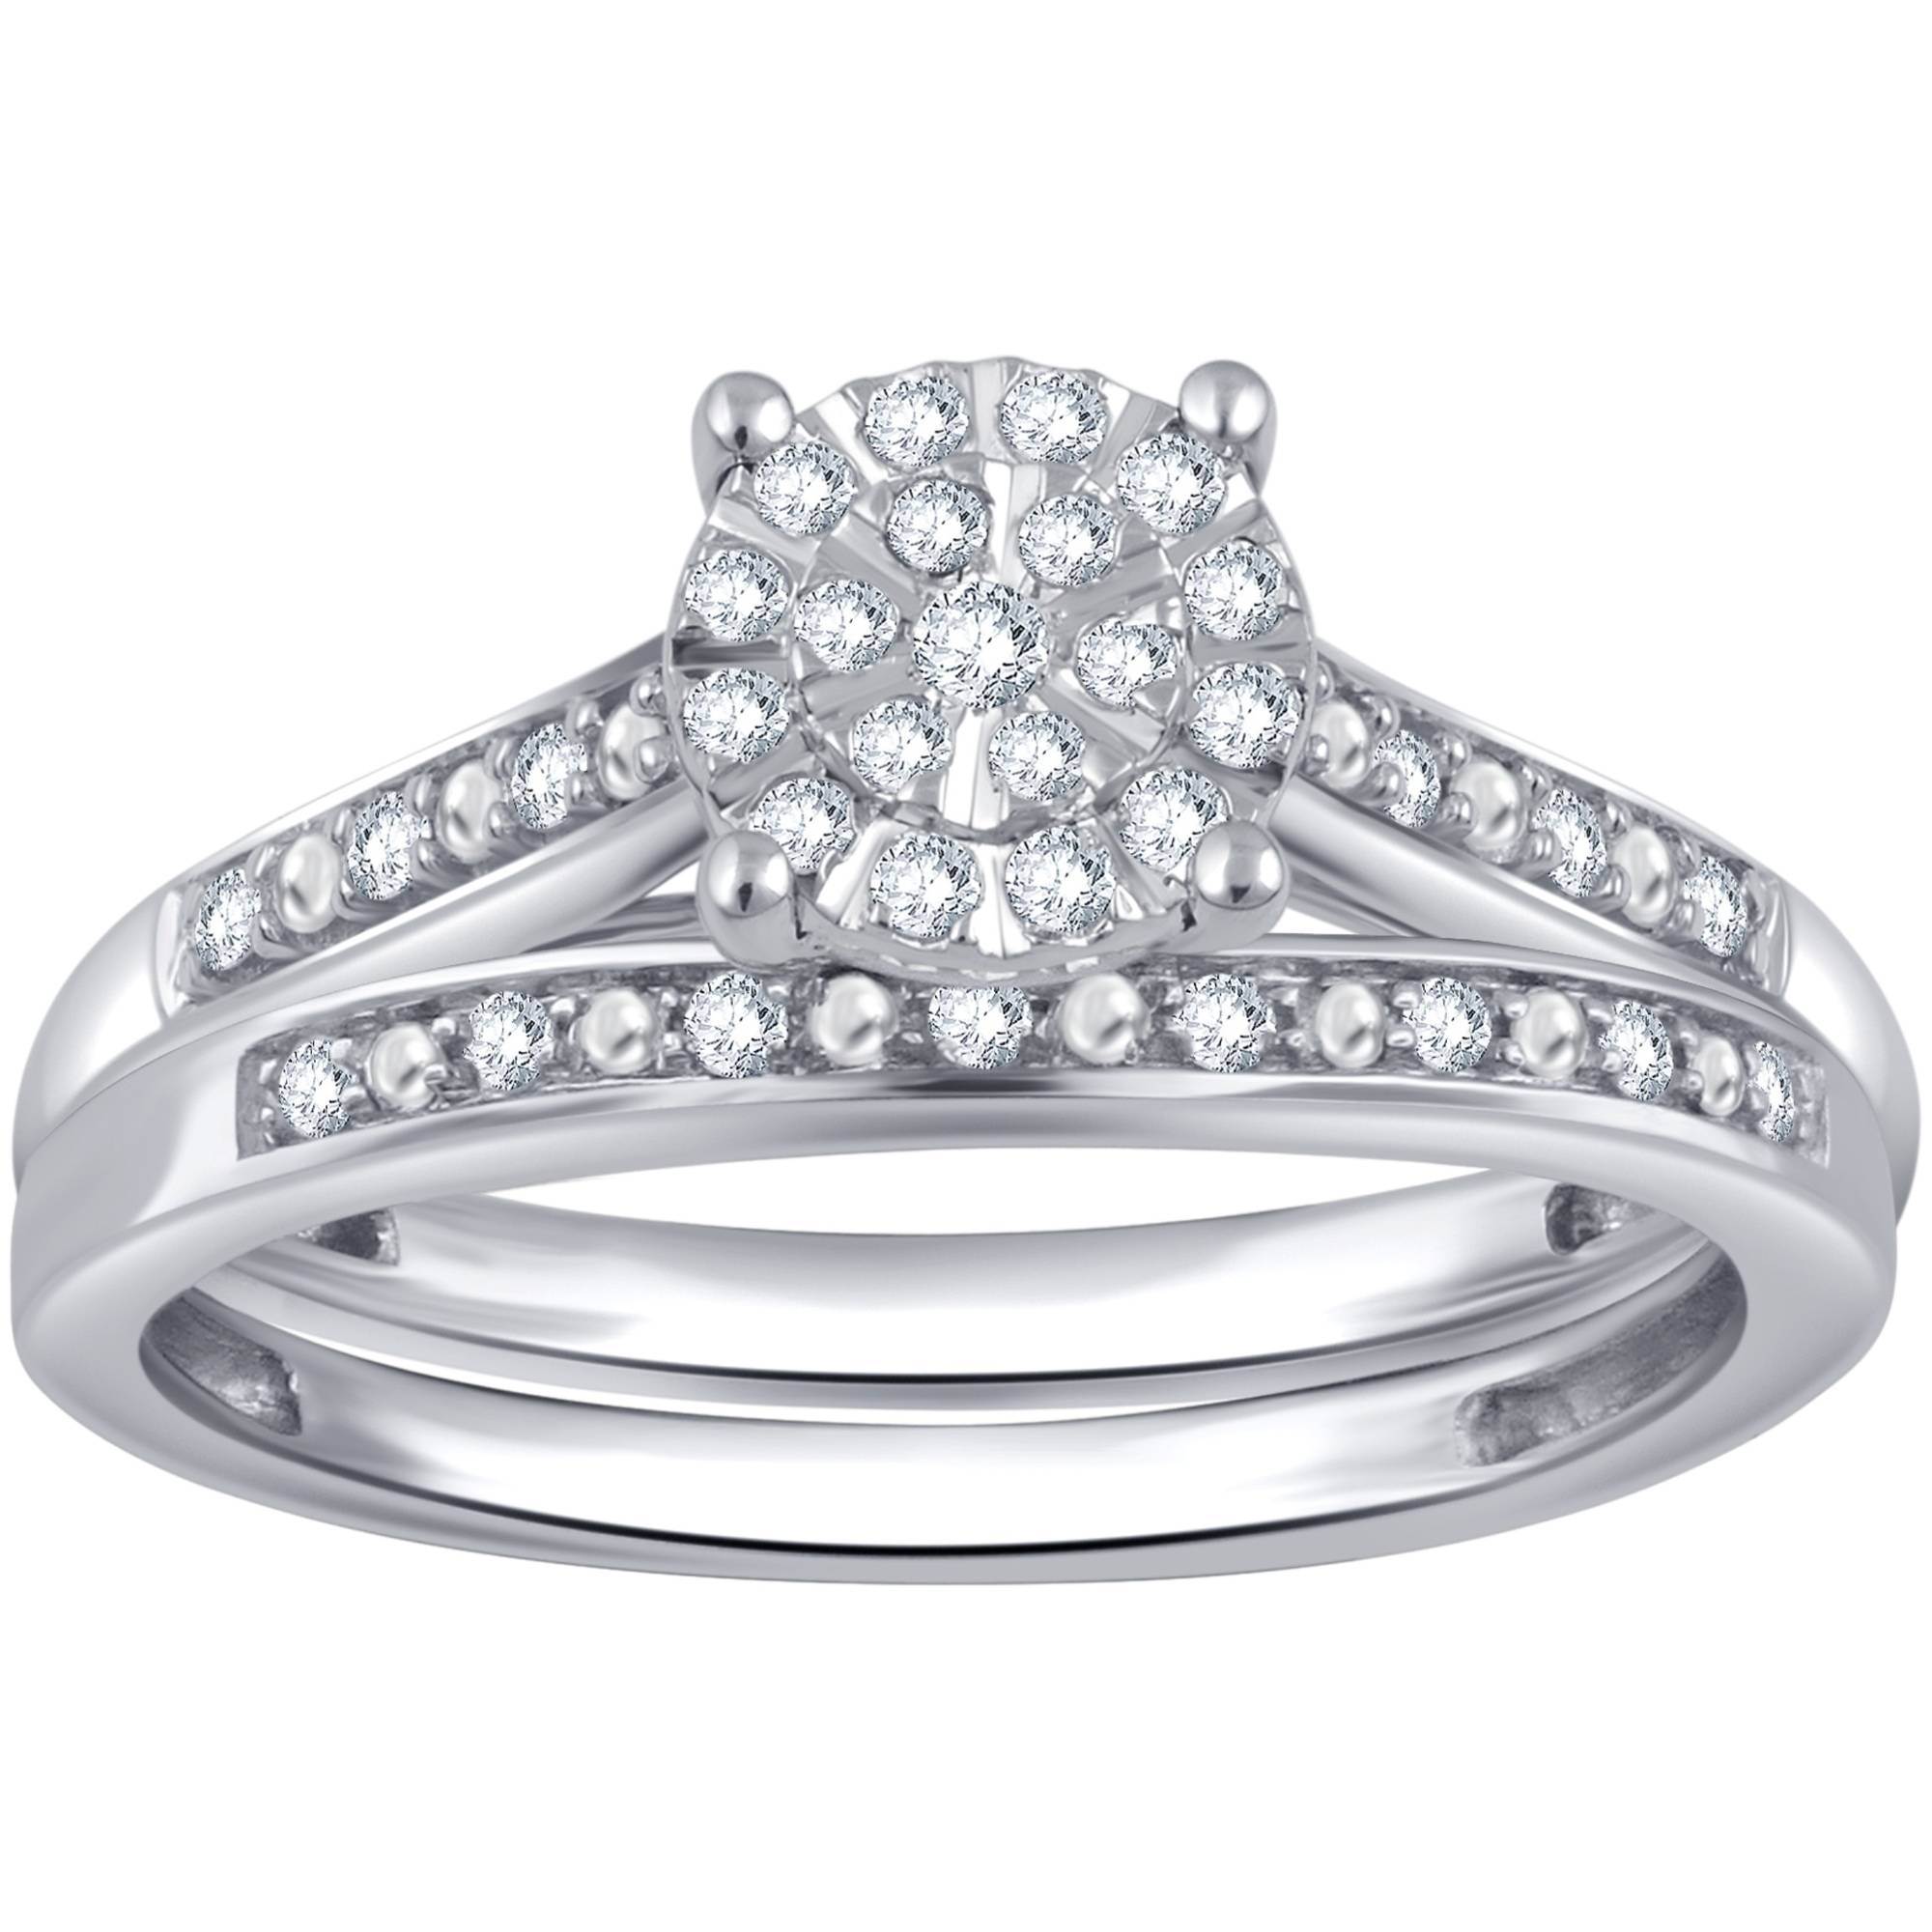 rings jewelry bride cool engagement that modern girls image love bridal diamond will